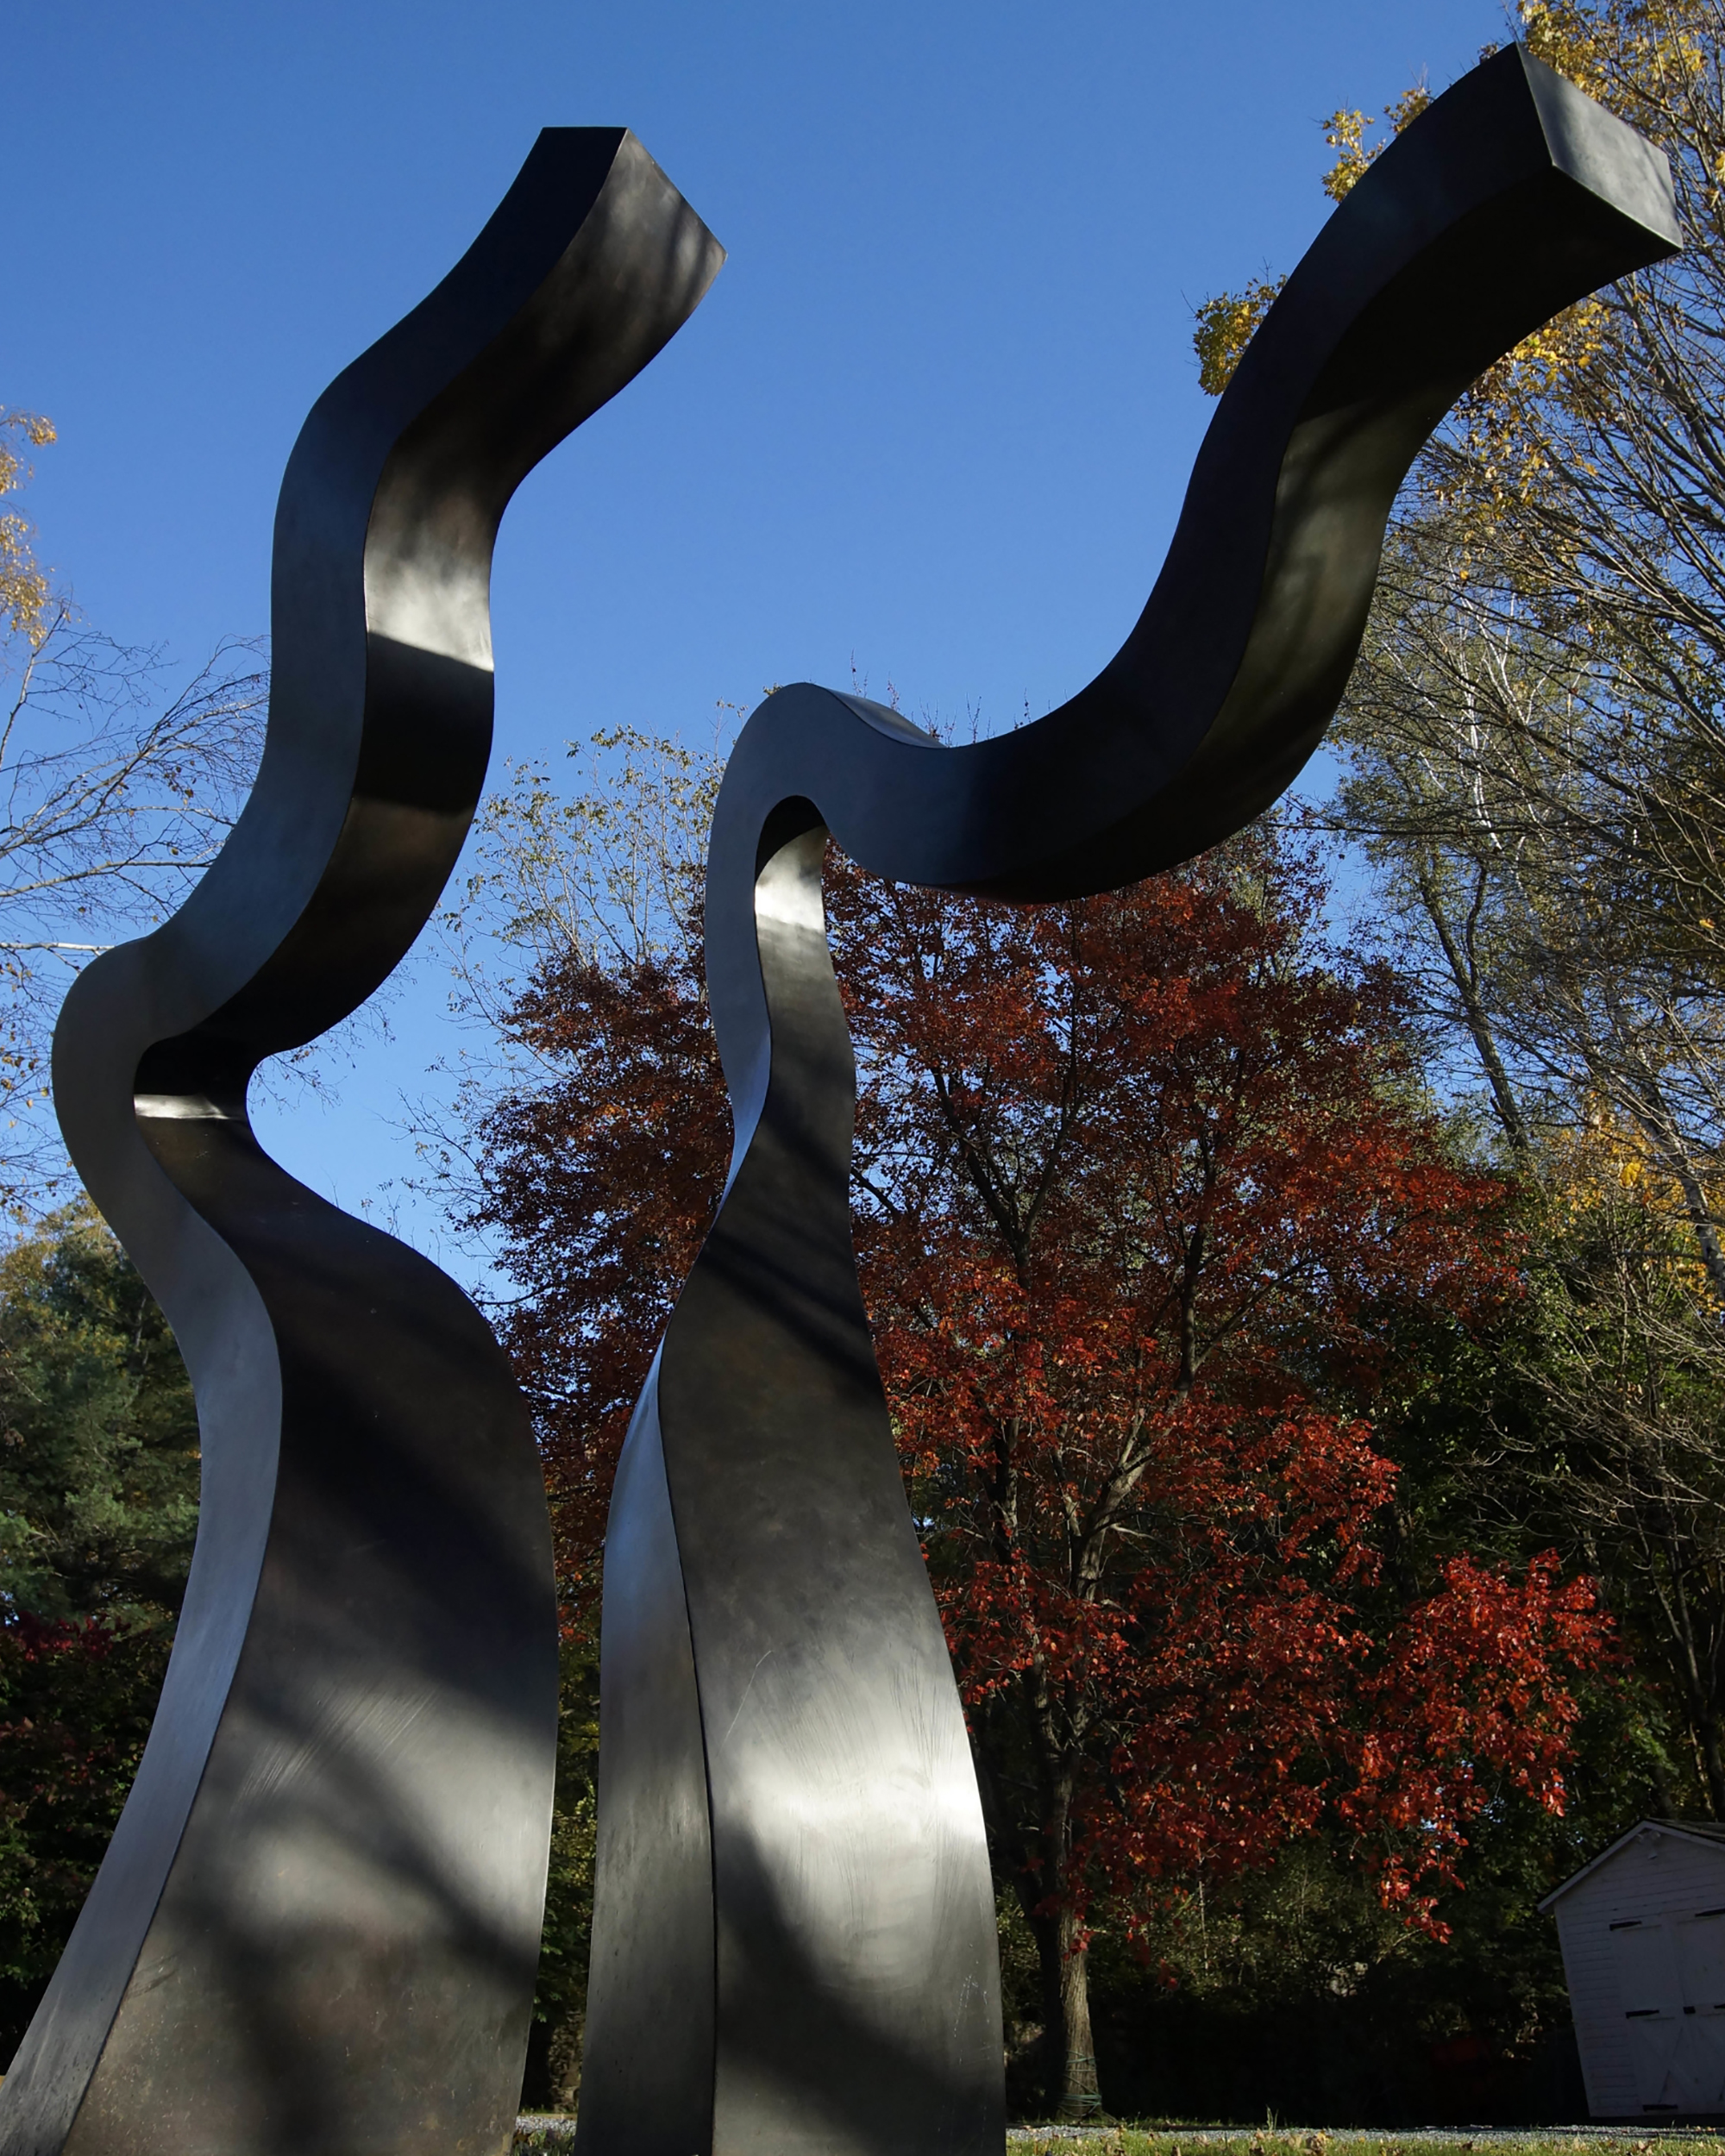 Stella in the Wind, 2009-11  , bronze sculpture, 138 x 120 x 72 inches, installation at Vallarino Fine Art, Millbrook, NY